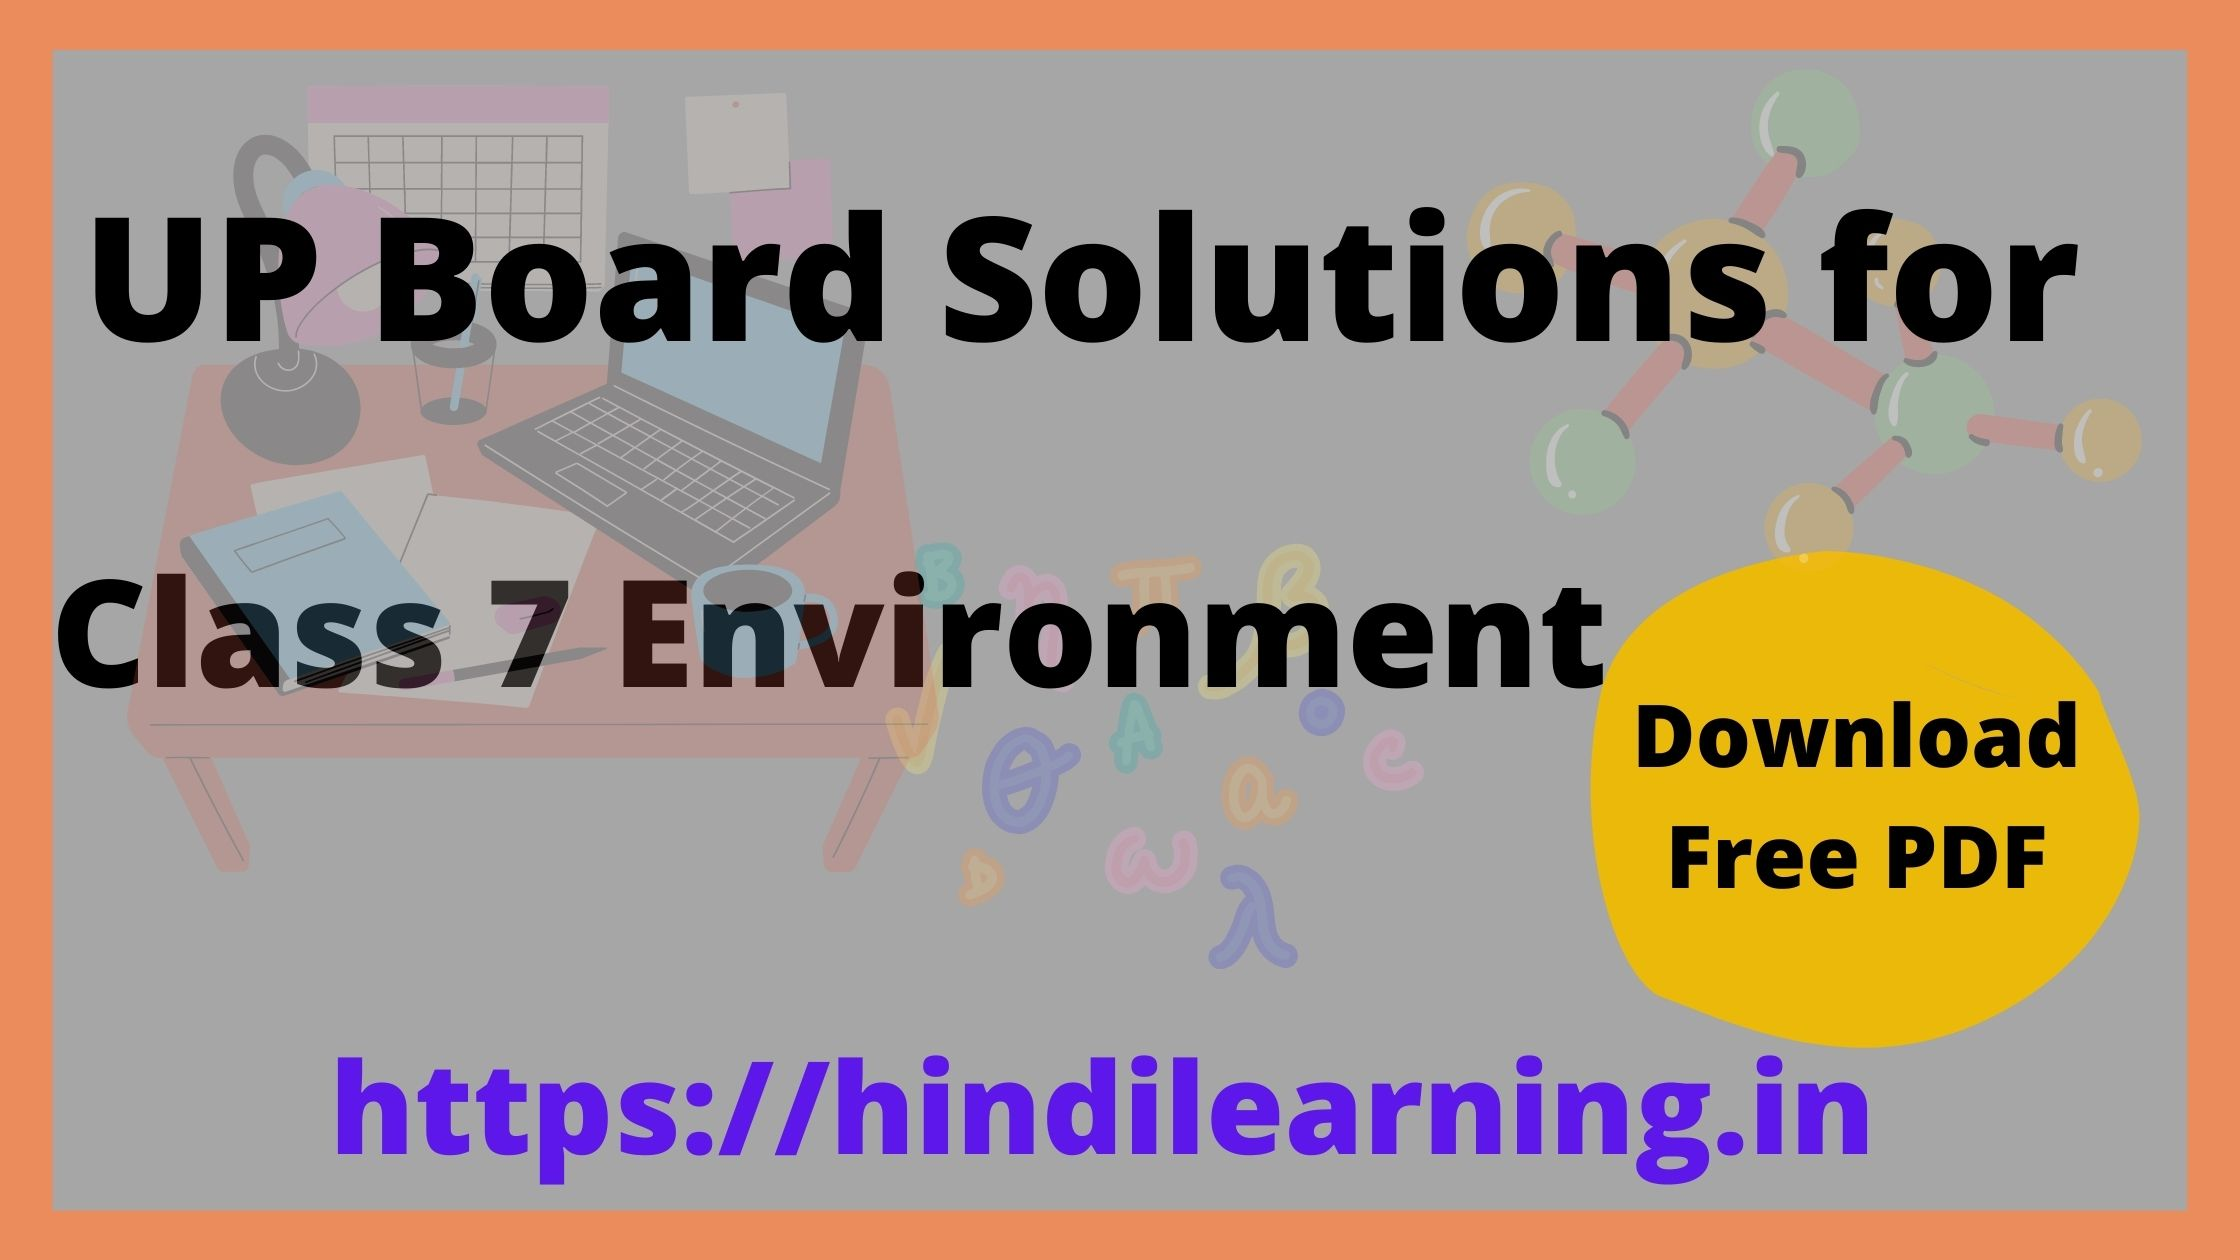 UP Board Solutions for Class 7 Environment पर्यावरण